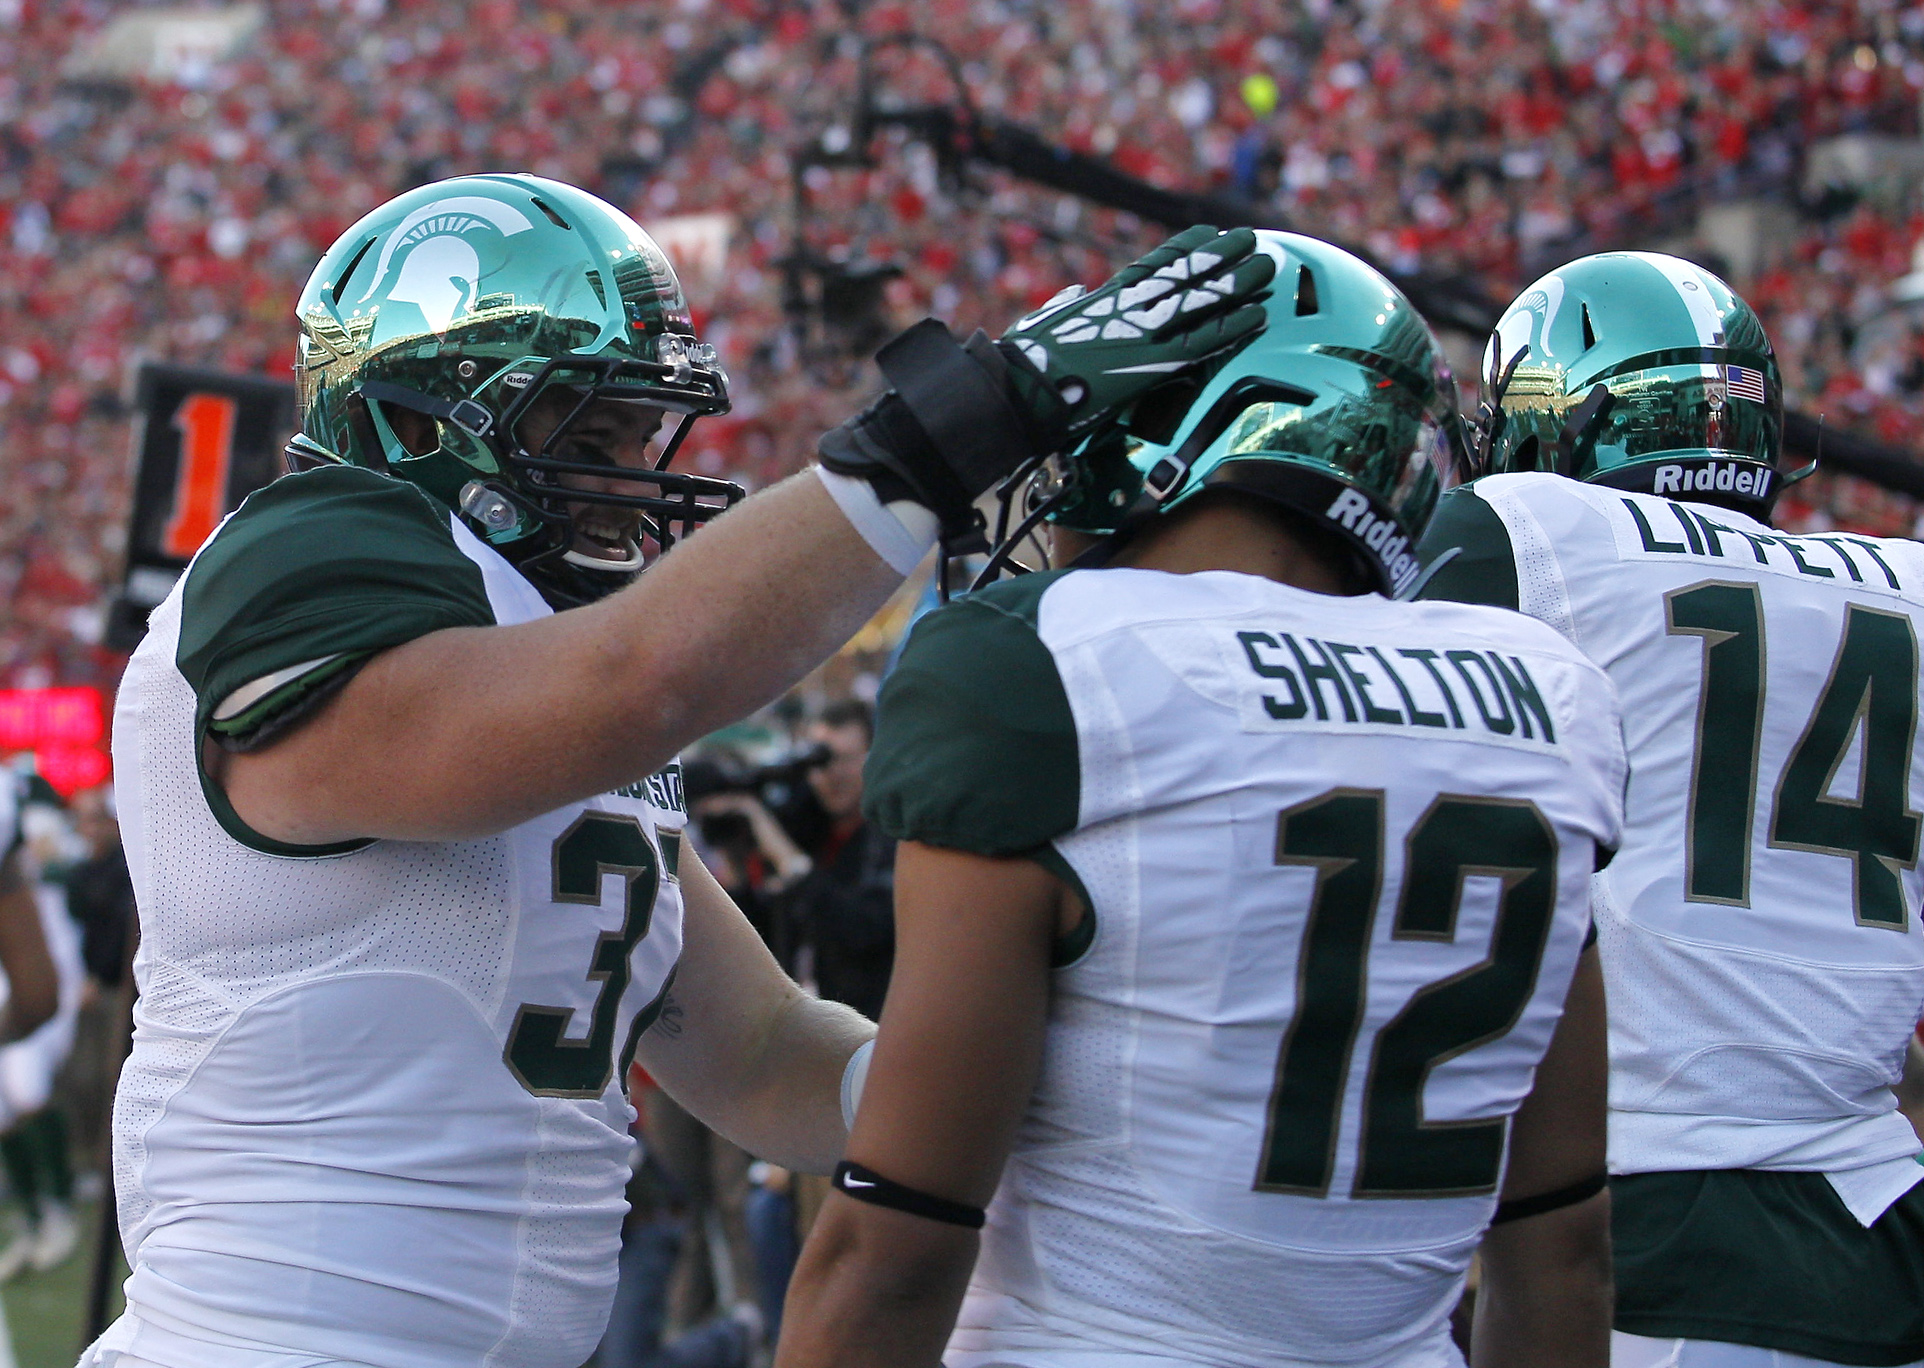 Nov 16, 2013; Lincoln, NE, USA; Michigan State Spartans full back Trevon Pendleton (37) congratulates R.J. Shelton (12) after Shelton's touchdown against the Nebraska Cornhuskers in the first quarter at Memorial Stadium. Mandatory Credit: Bruce Thorson-USA TODAY Sports